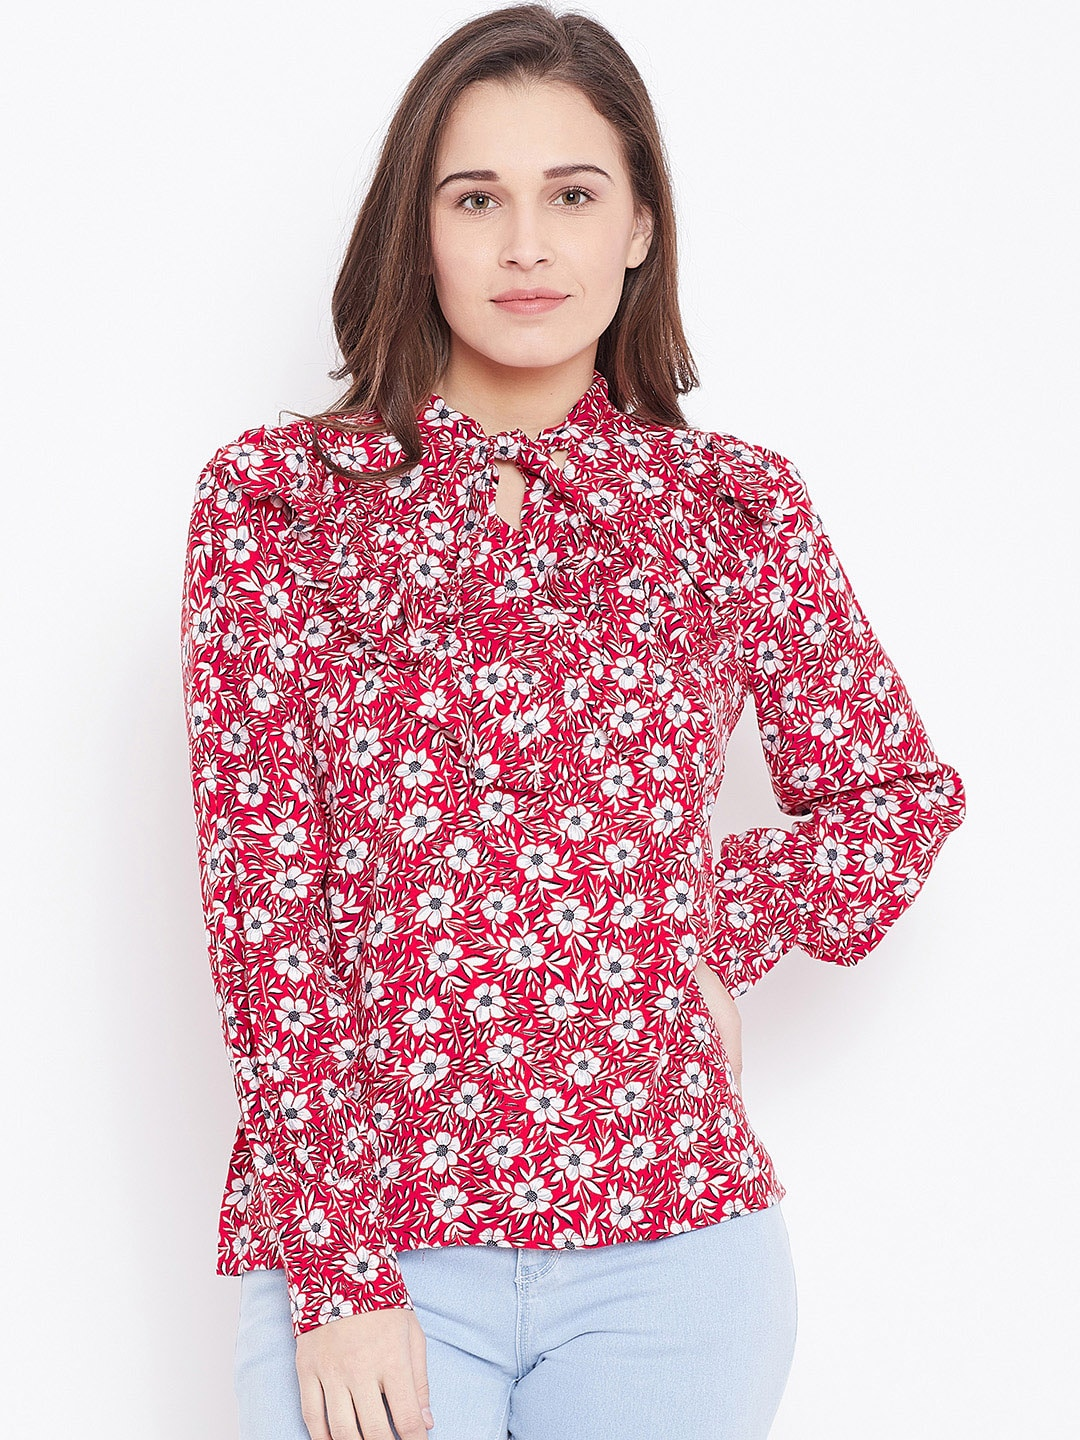 abfa8e8d4870f Lee Cooper Clothing - Buy Lee Cooper Clothing Online in India